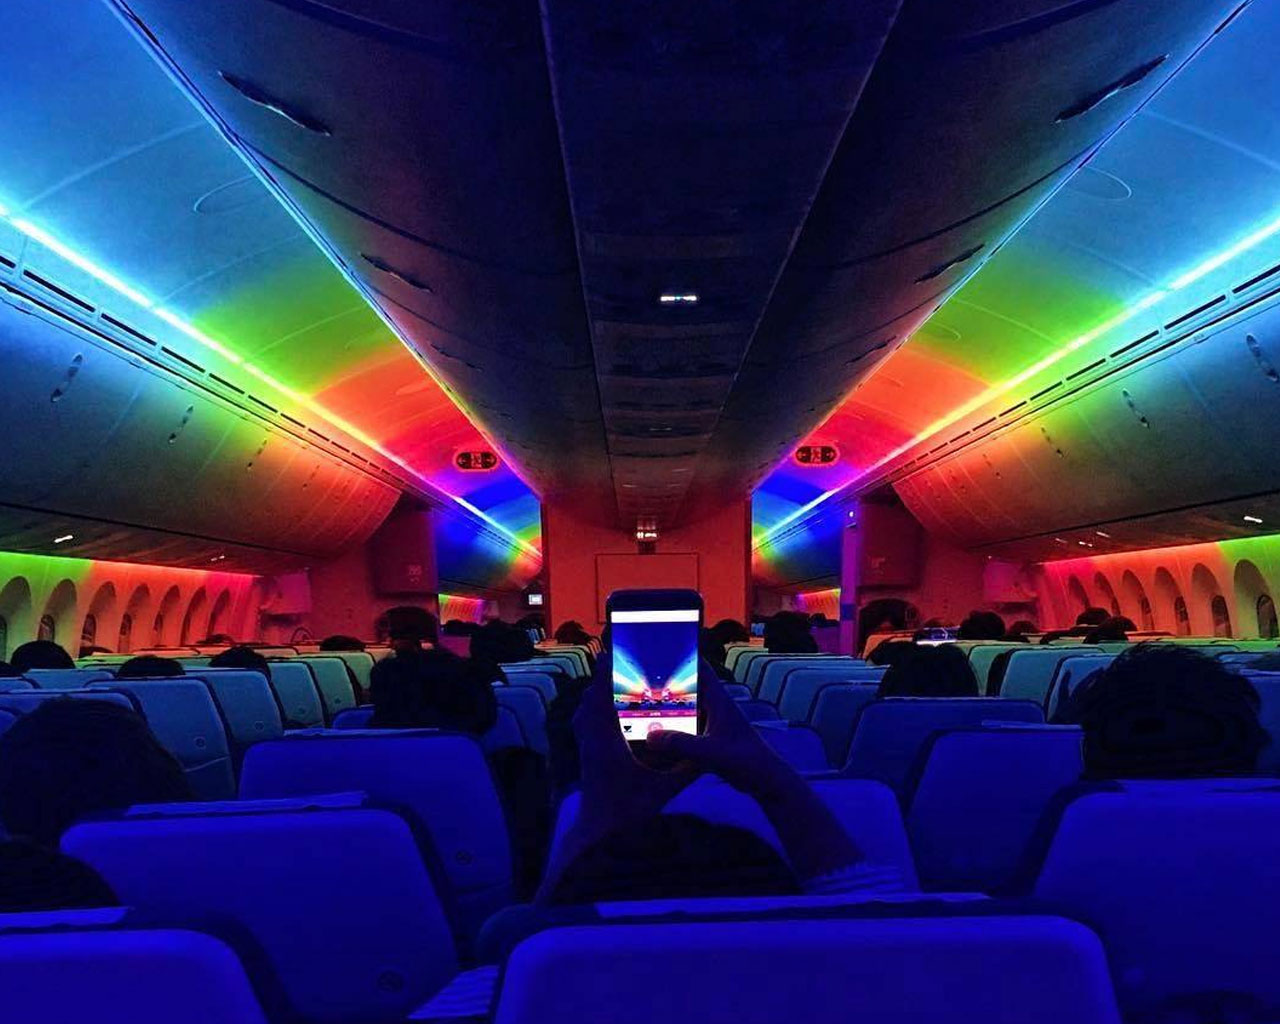 Scoot with Dreamliner 787. Colourful mood lights that change depending on the time of the day